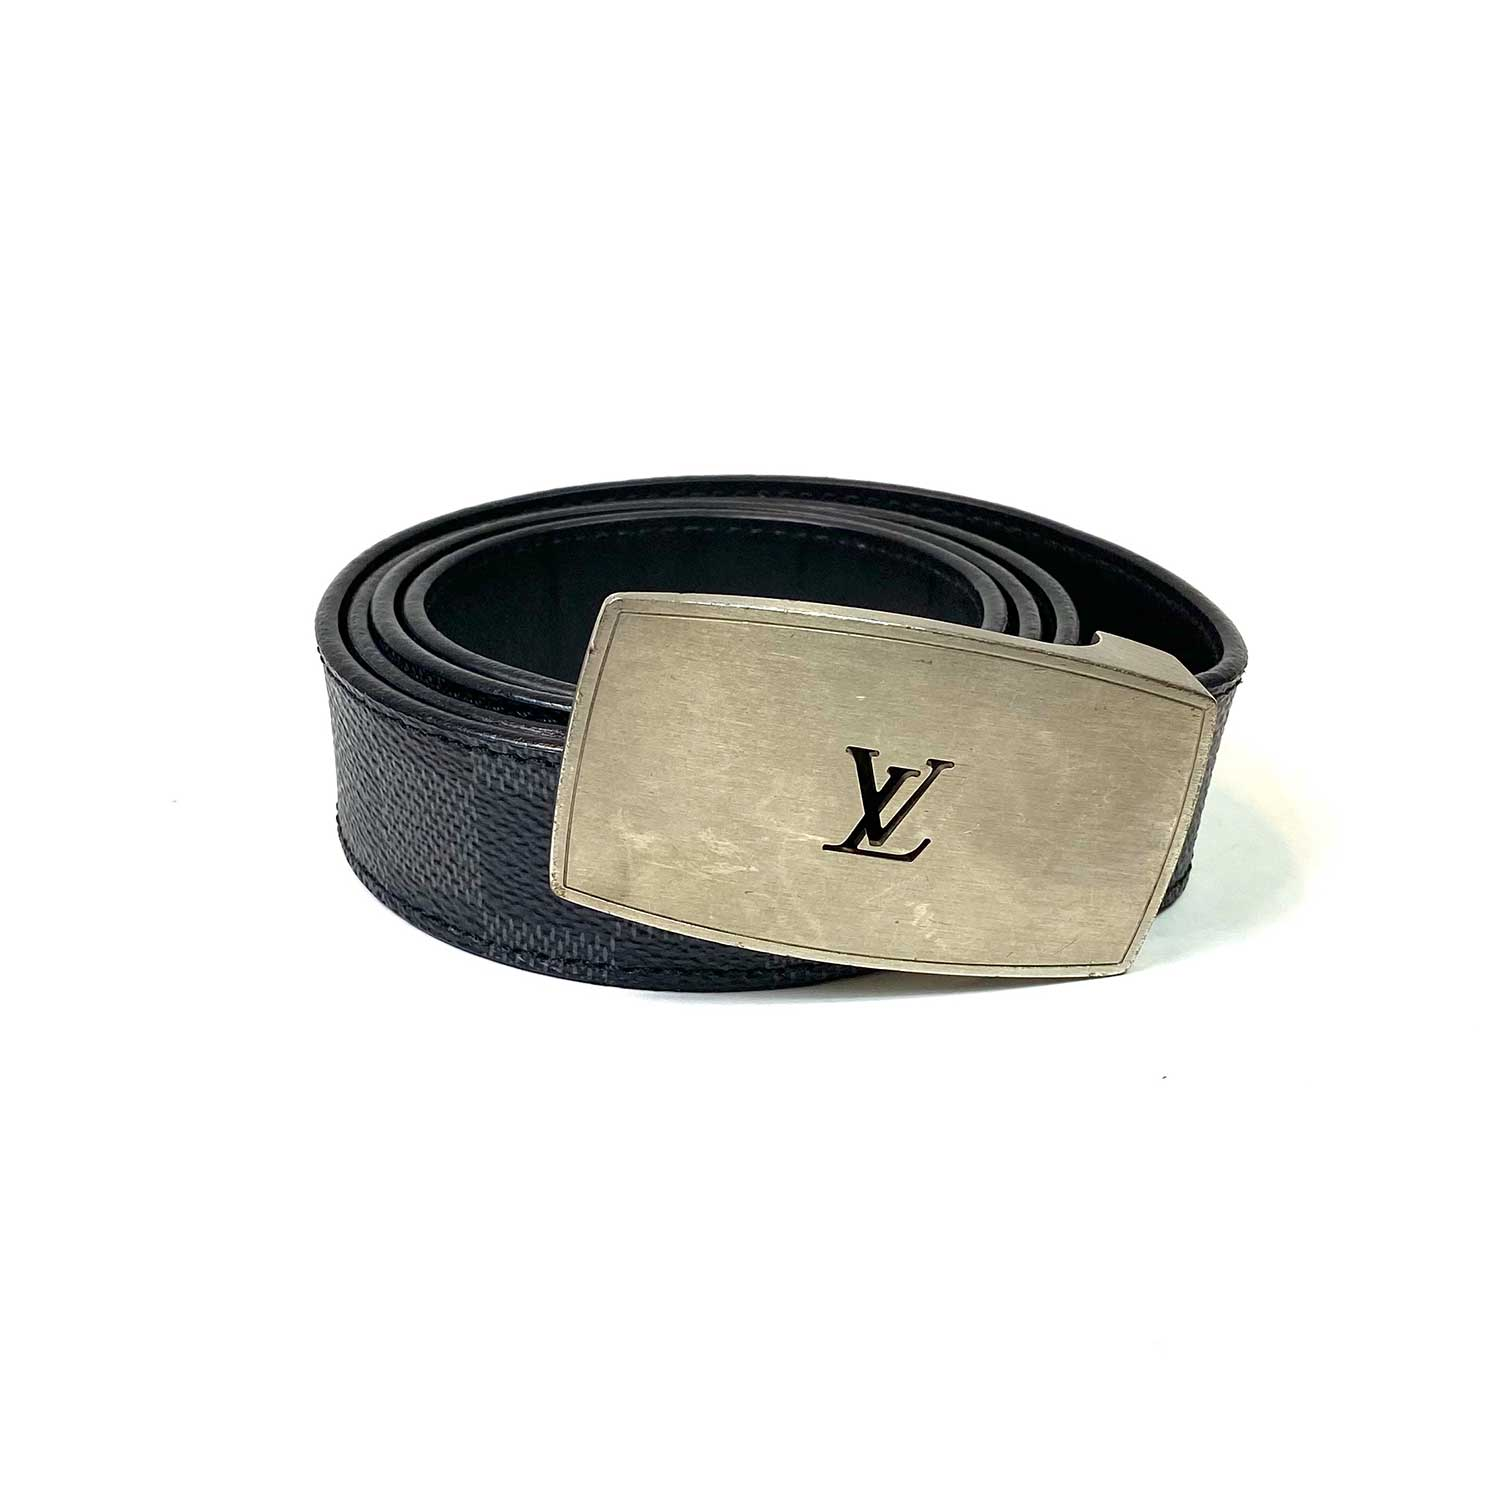 Cinto Louis Vuitton Preto